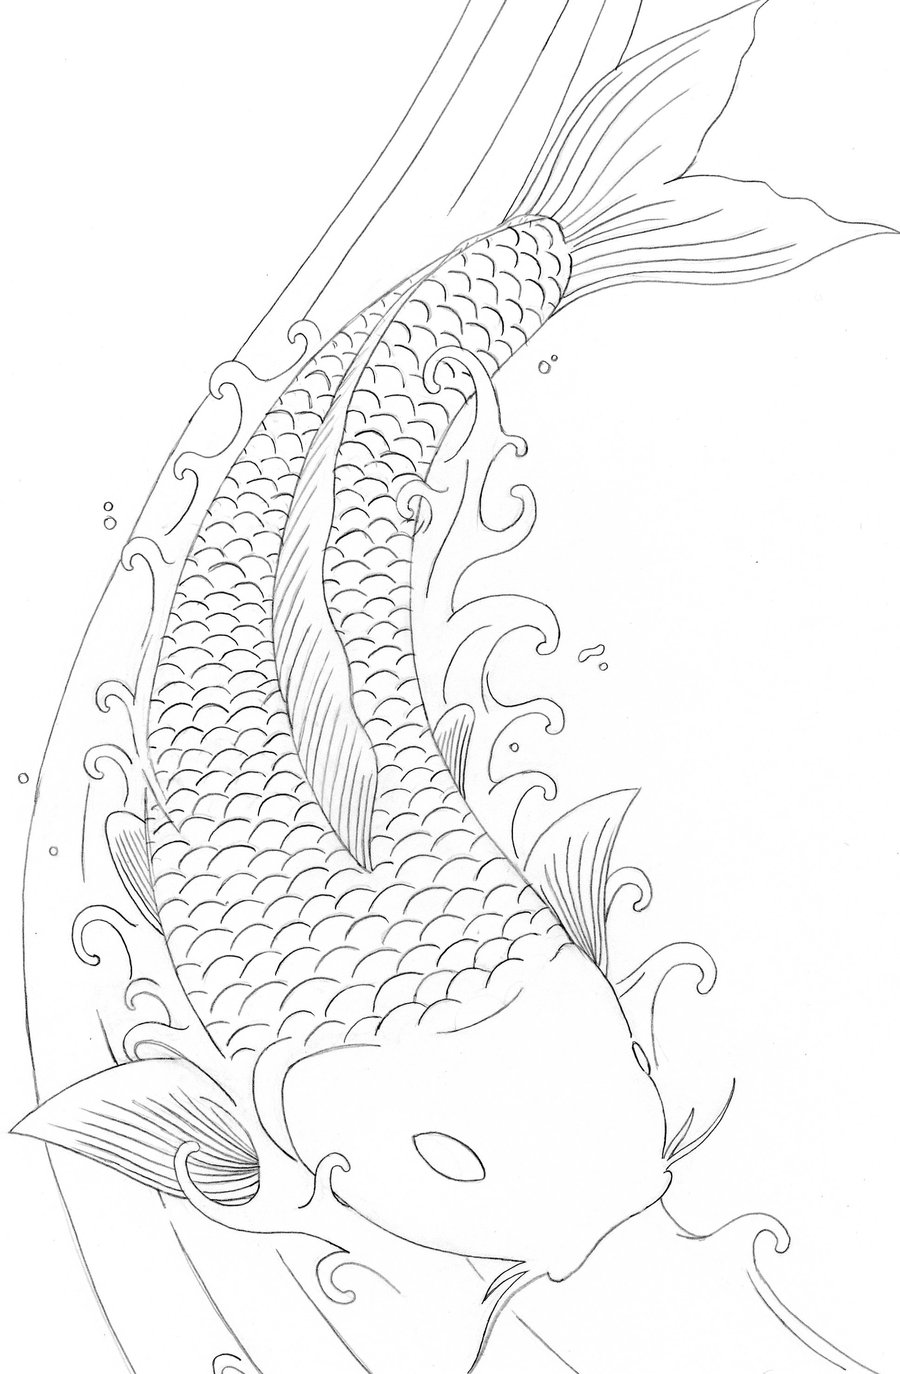 japanese fish coloring pages - photo#8